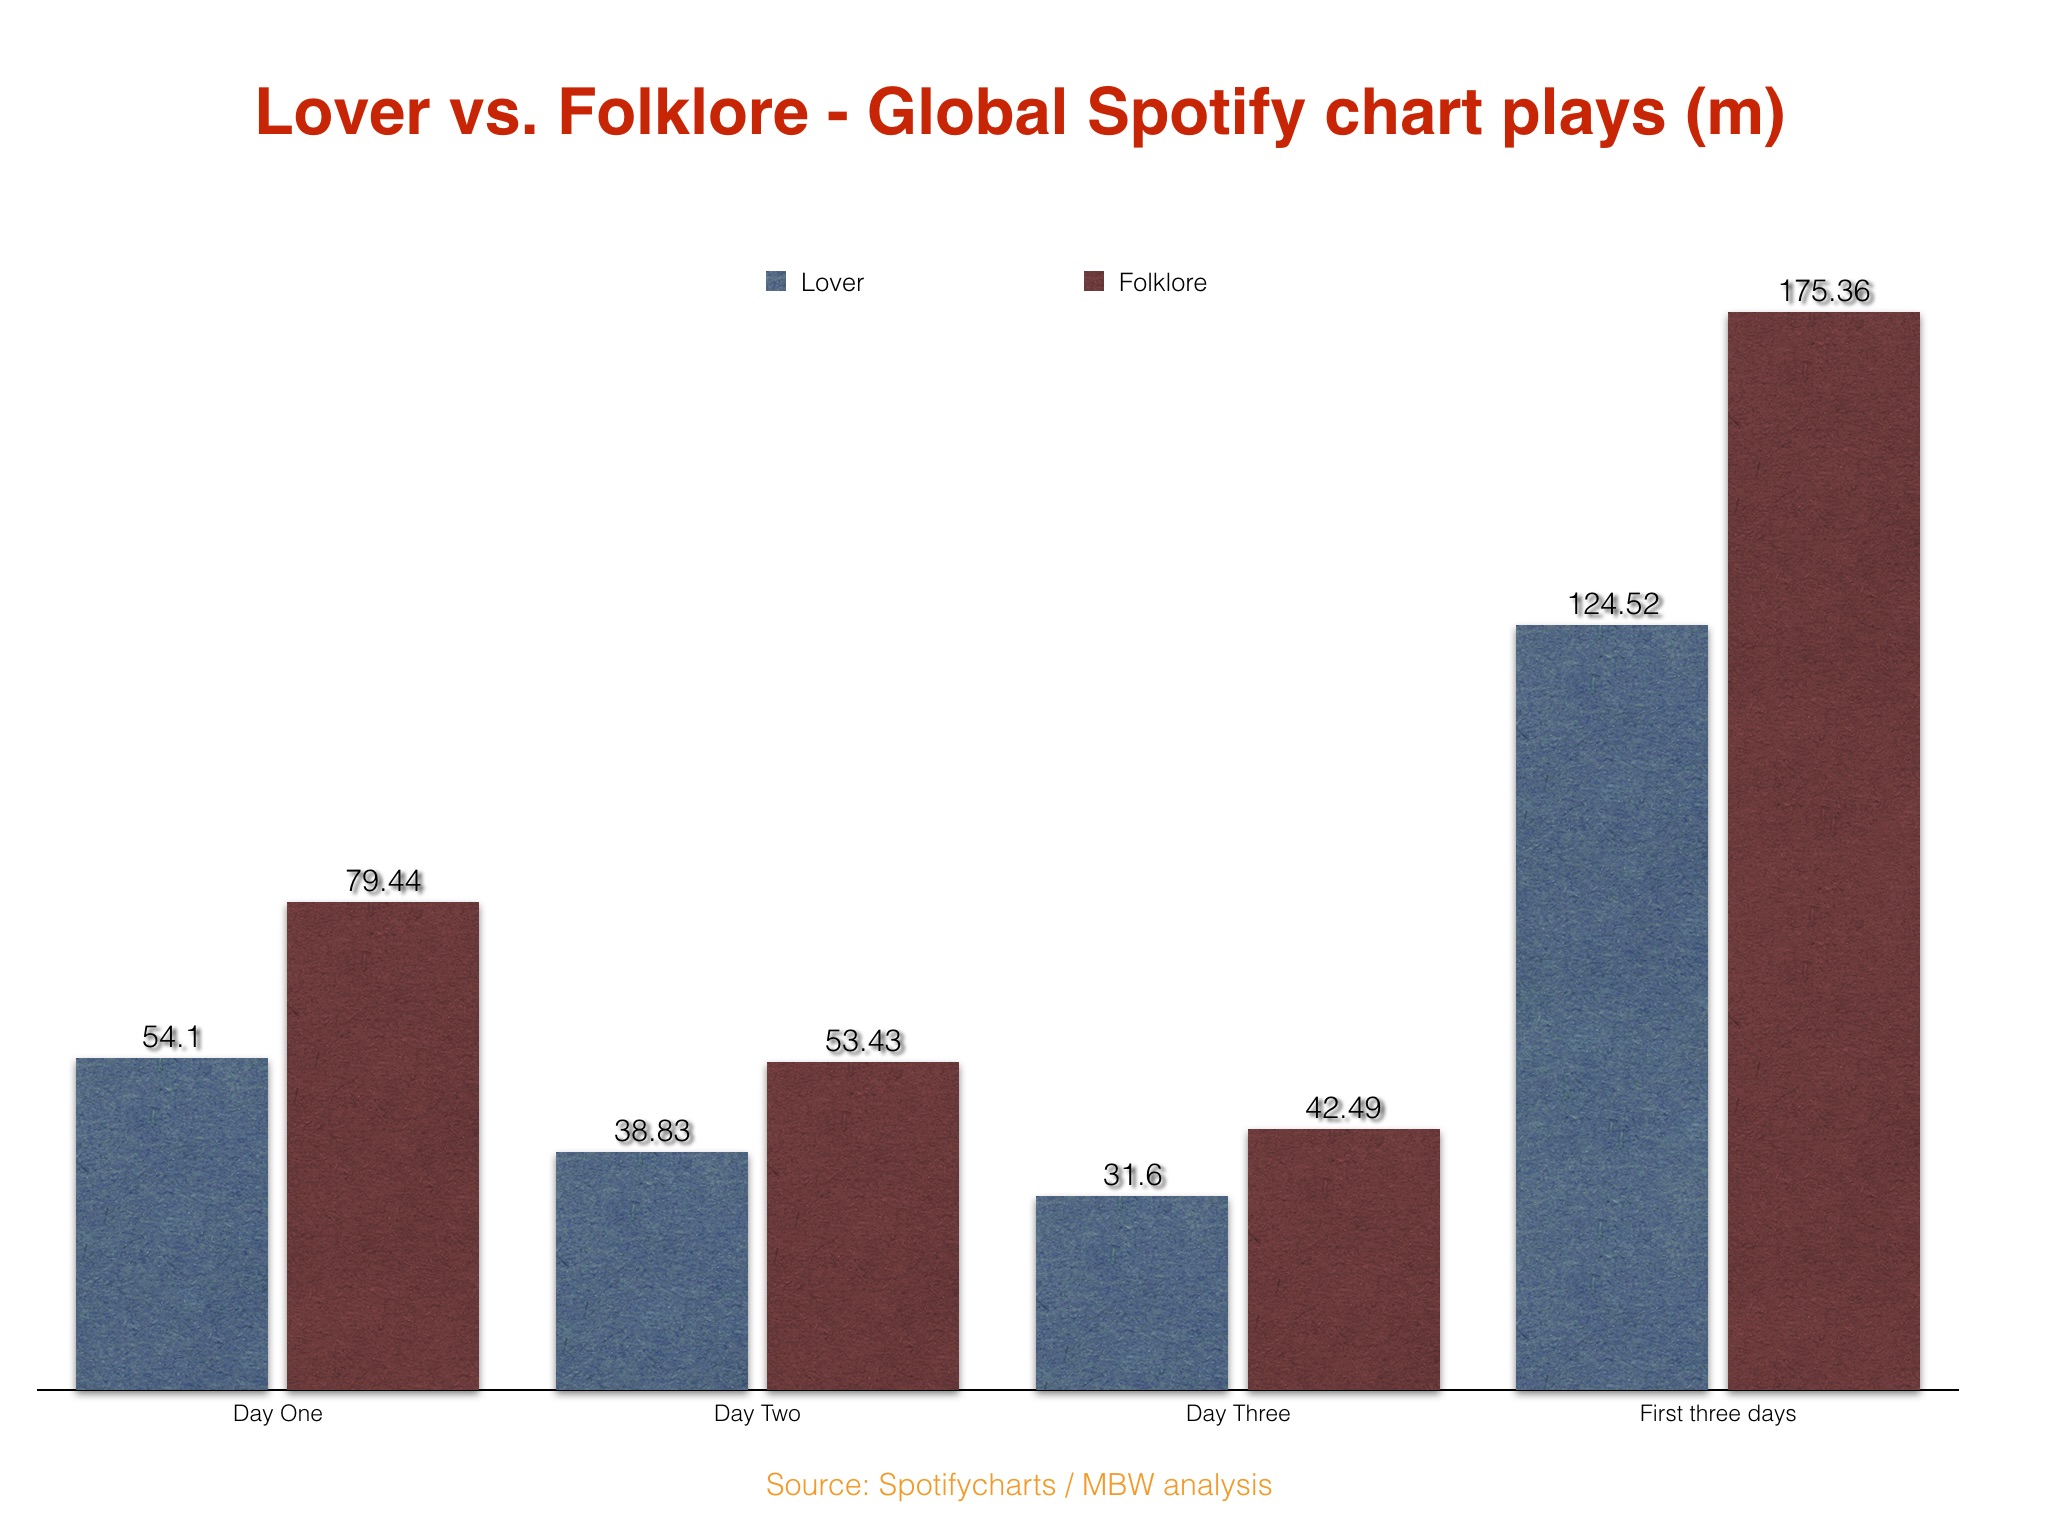 Taylor Swift S Folklore Just Made History On Spotify And Blew Away The Launch Of Her Last Album Lover Music Business Worldwide